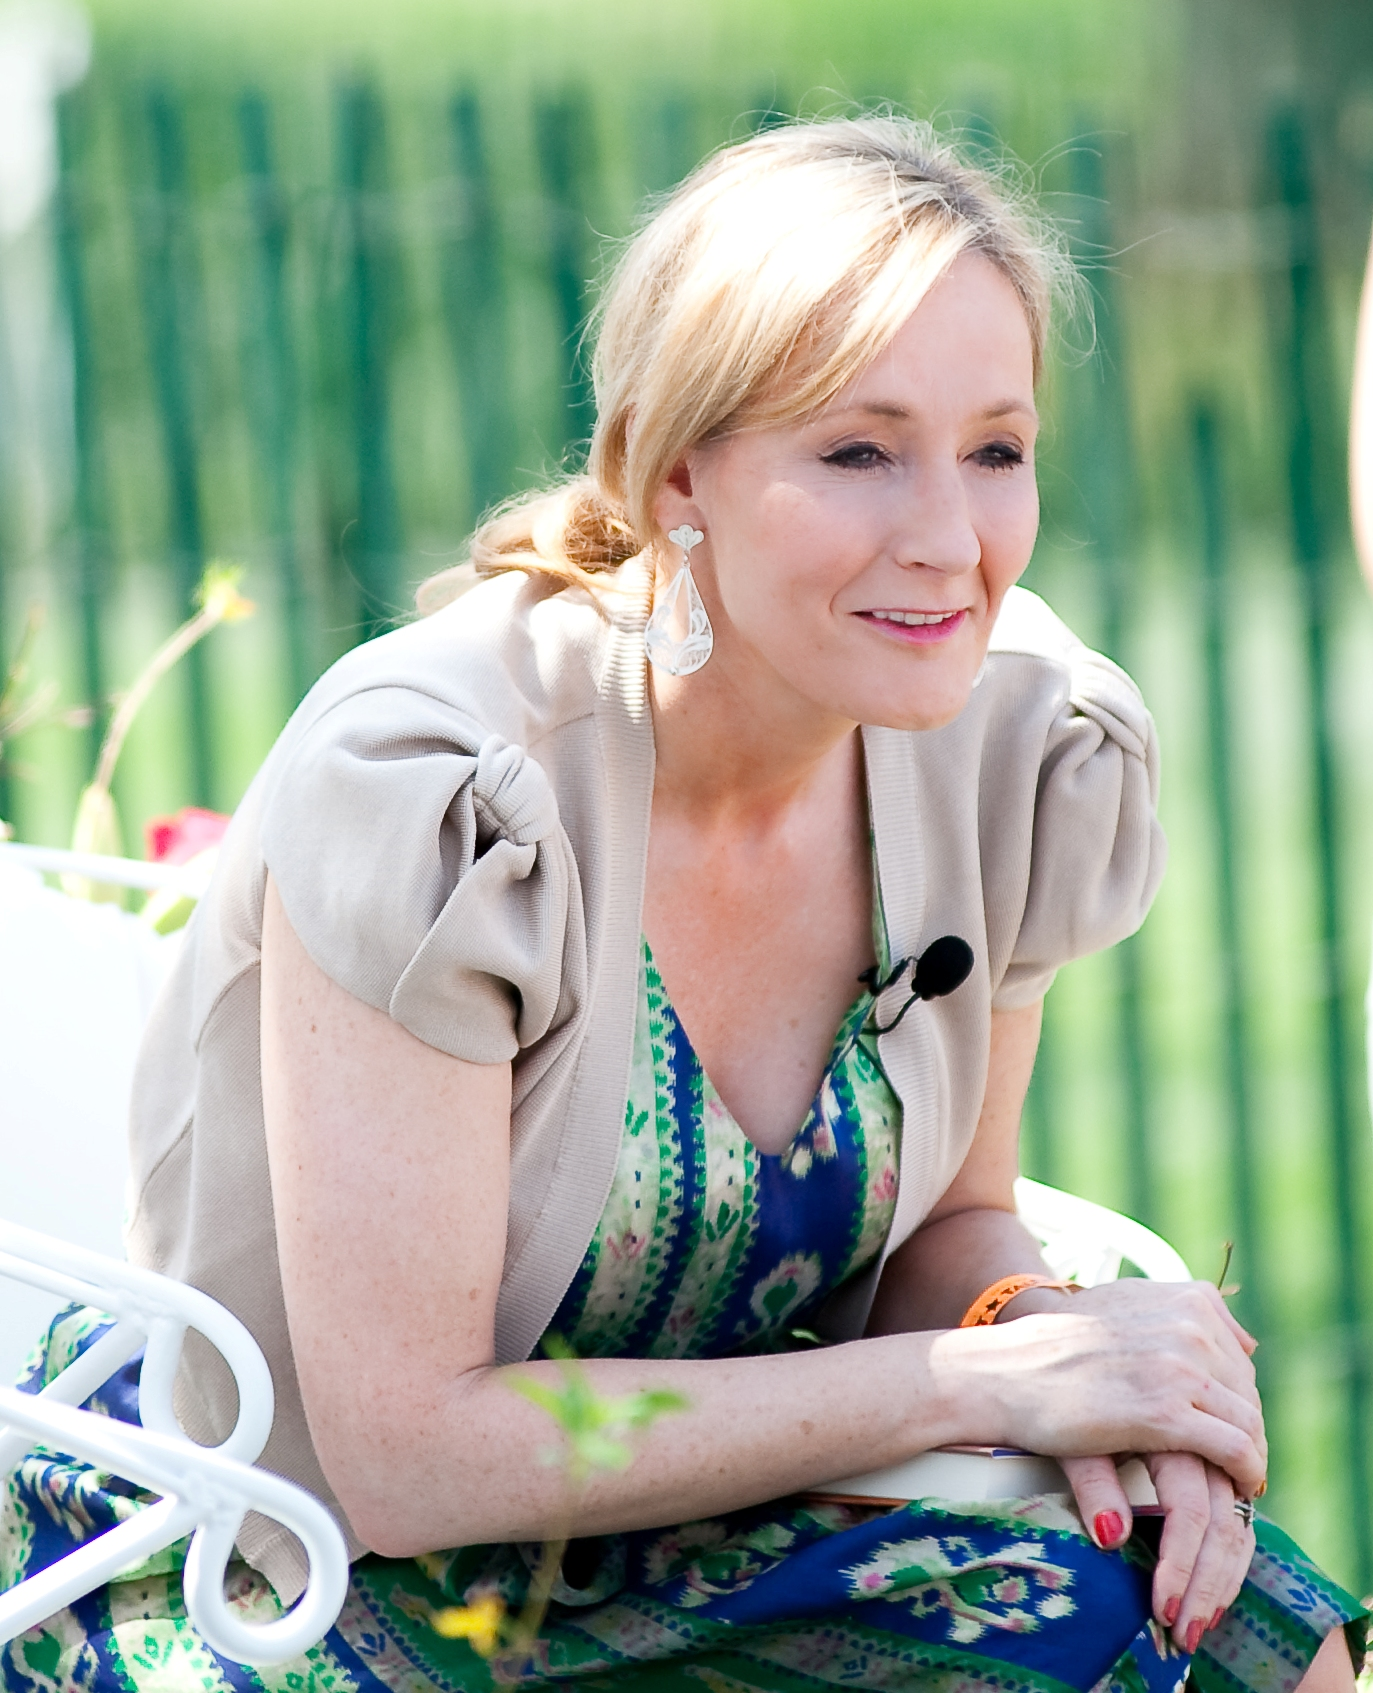 J.K. Rowling reads to children from her book at the White House.